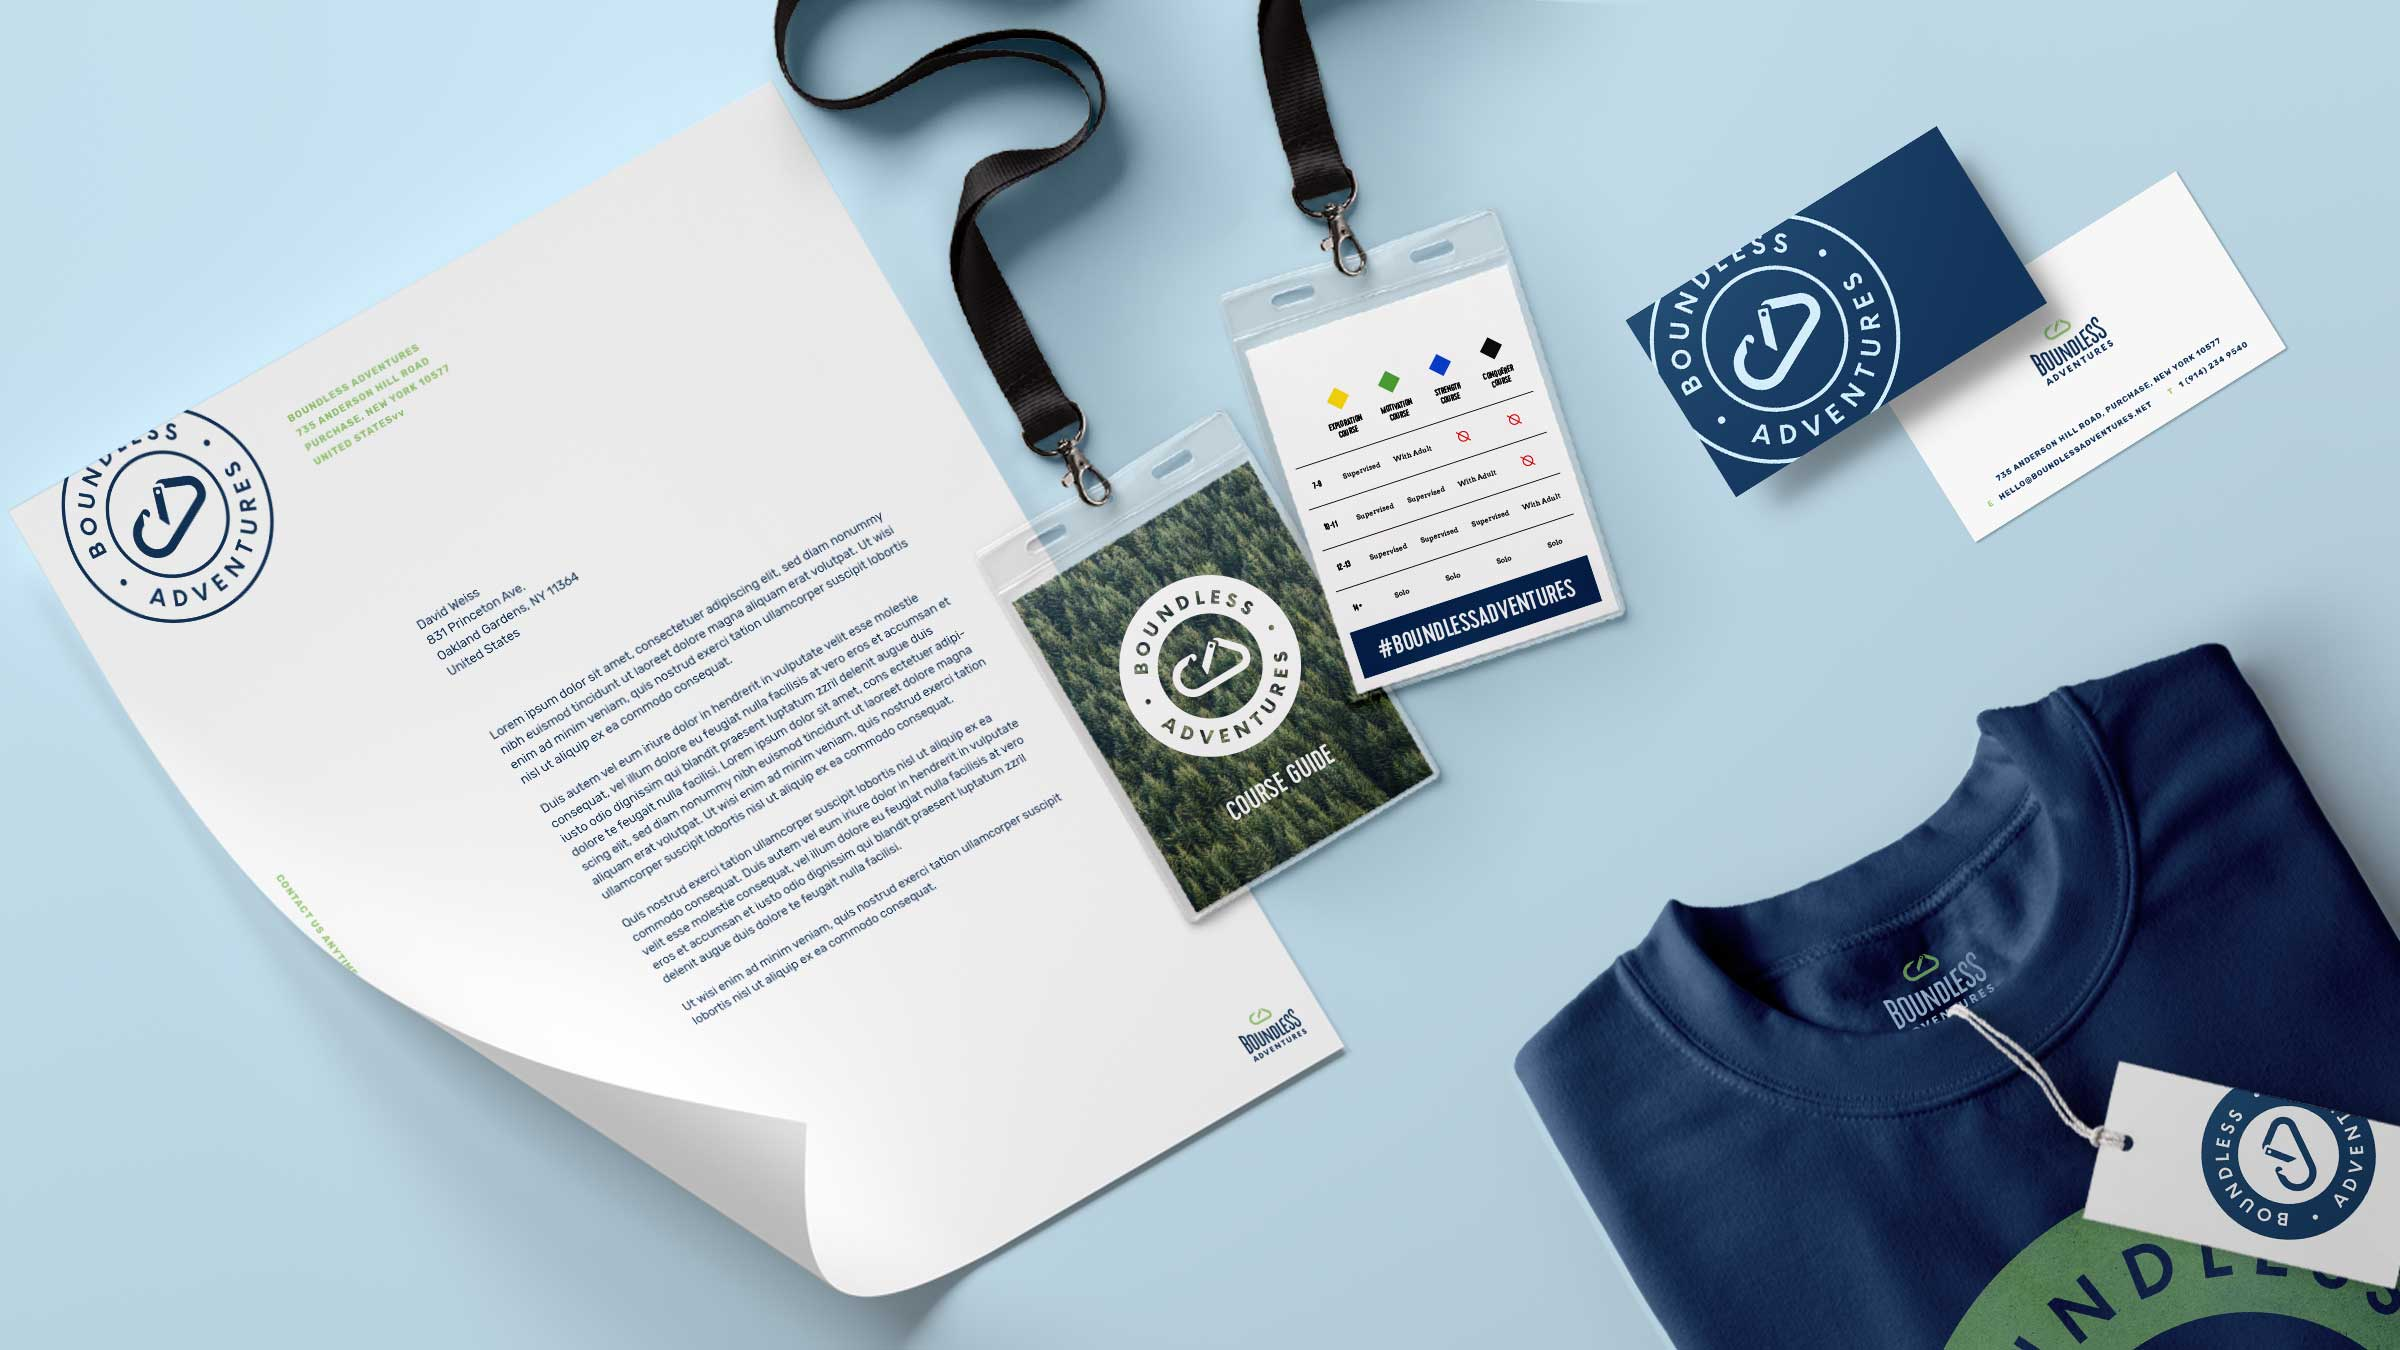 Print collateral design for Boundless Adventures